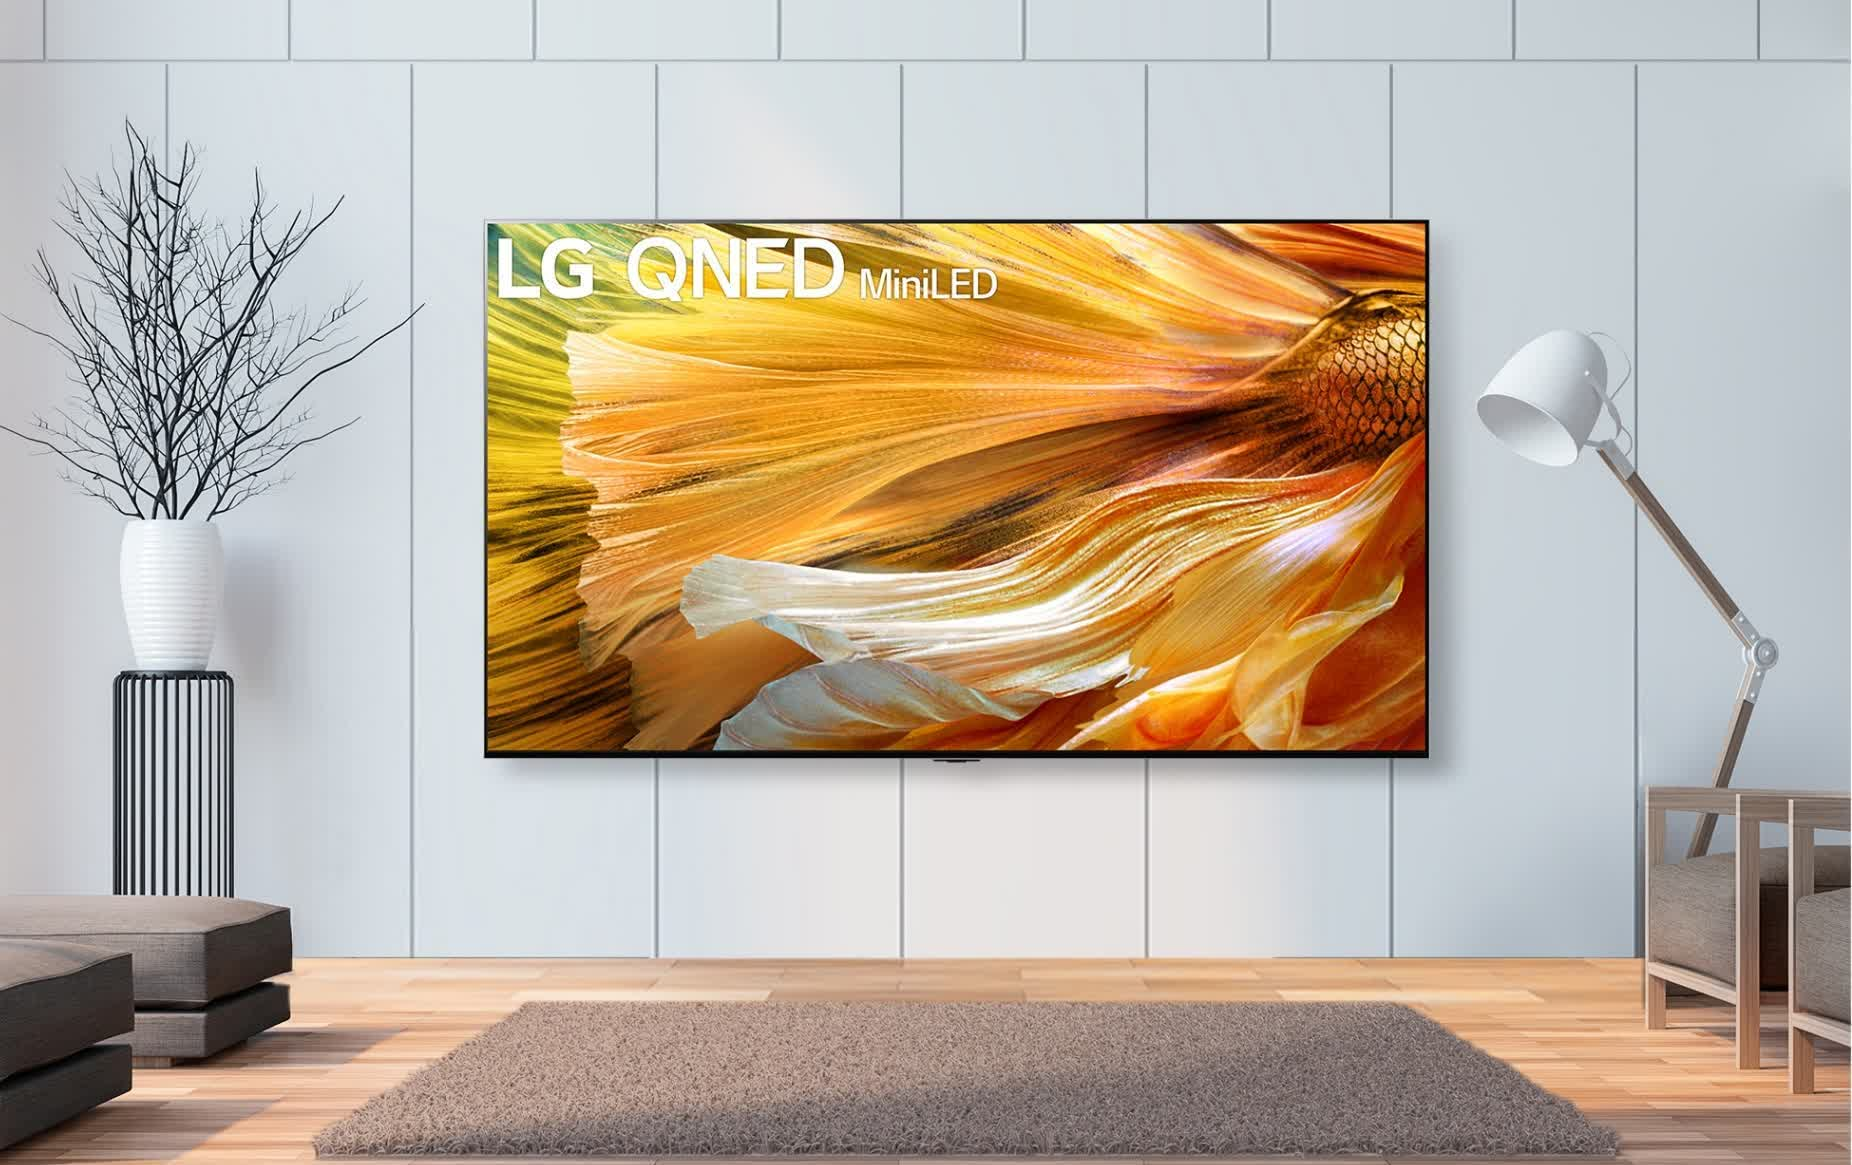 LG's first Mini LED TVs arrive this month